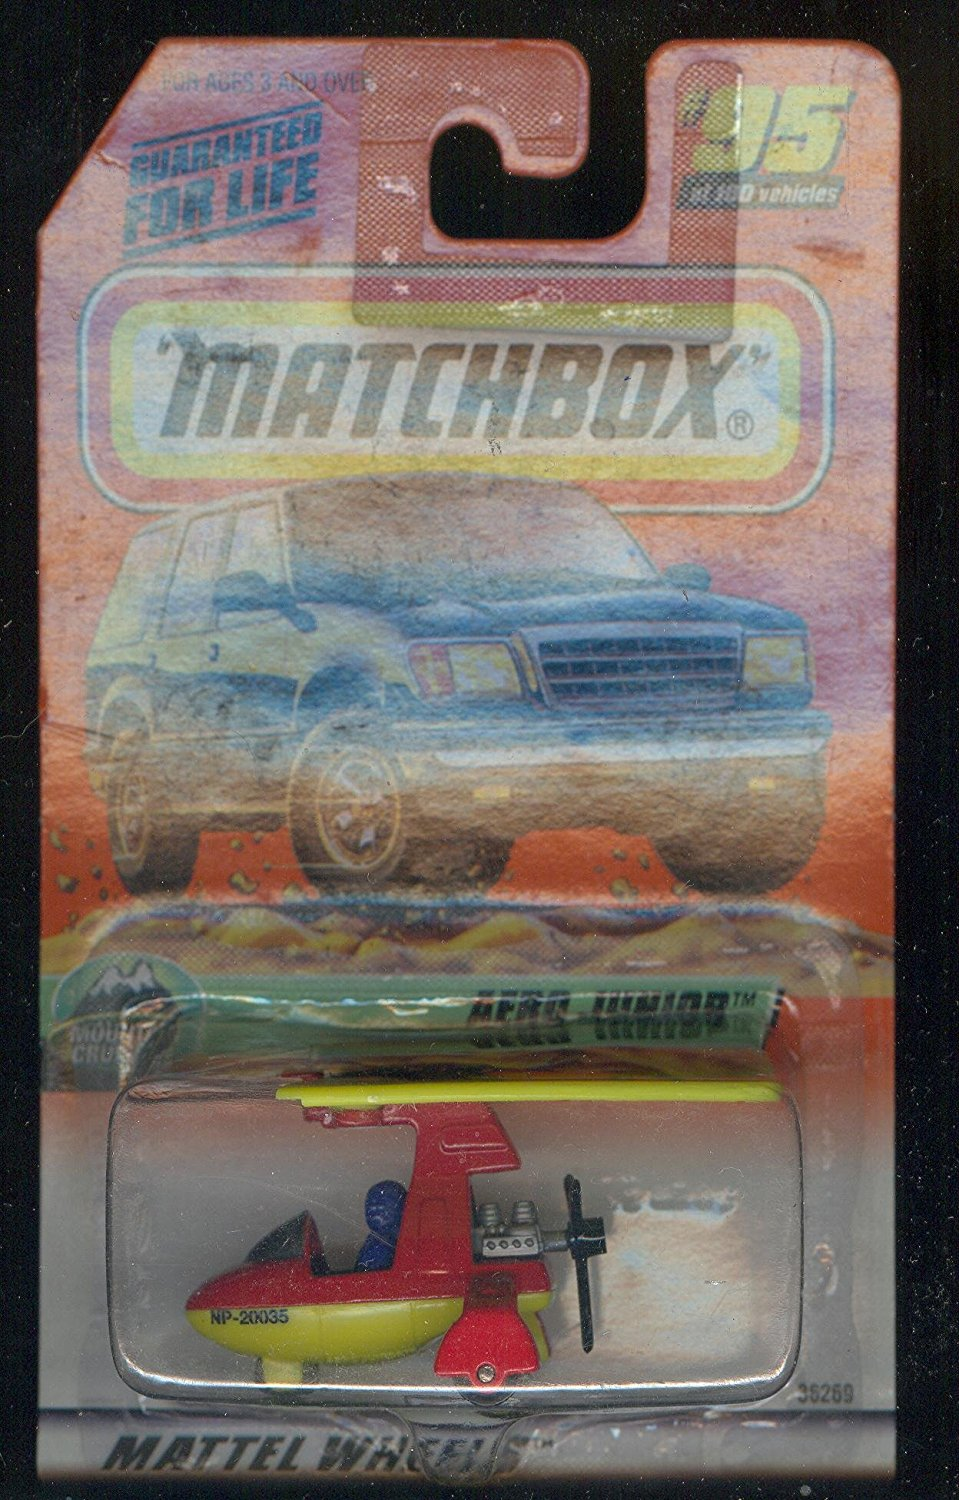 1998-95 of 100 Aero Junior Mountain Cruisers 1:64 Scale, Matchbox 1998-95 of 100 Aero... by